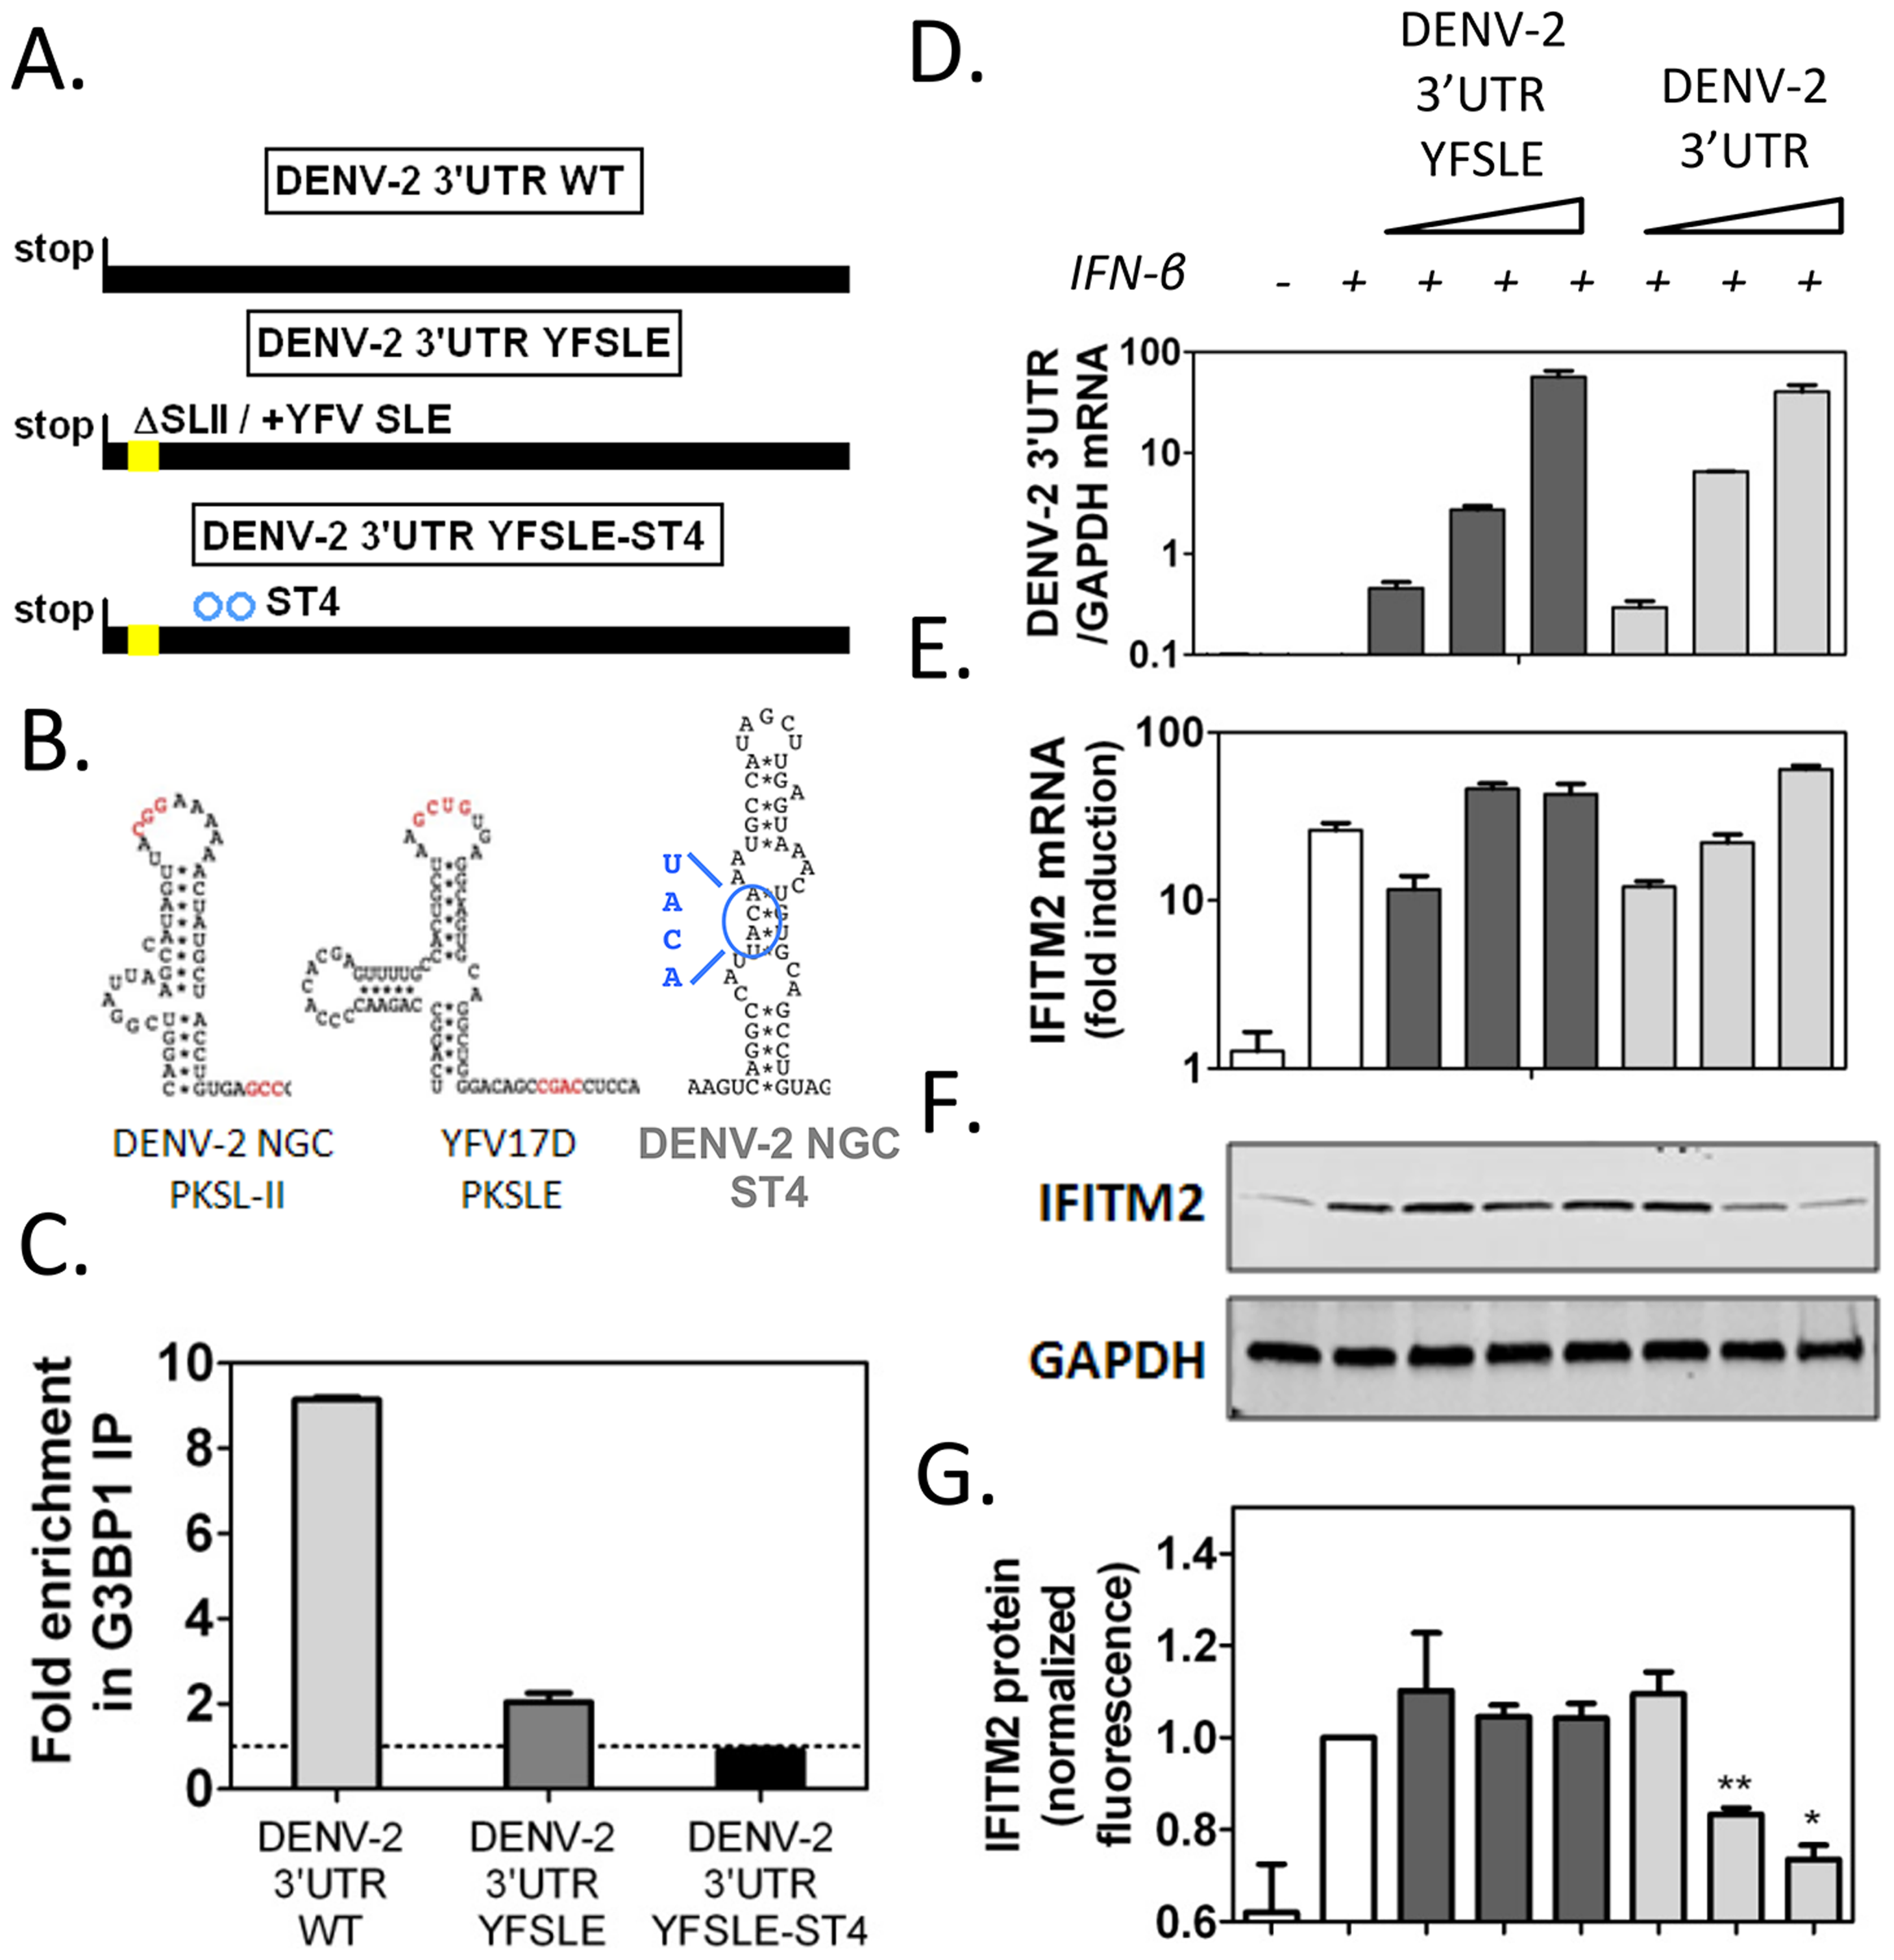 DENV-2 3′UTR downregulates ISG protein expression through G3BP1, G3BP2 and CAPRIN1 binding.